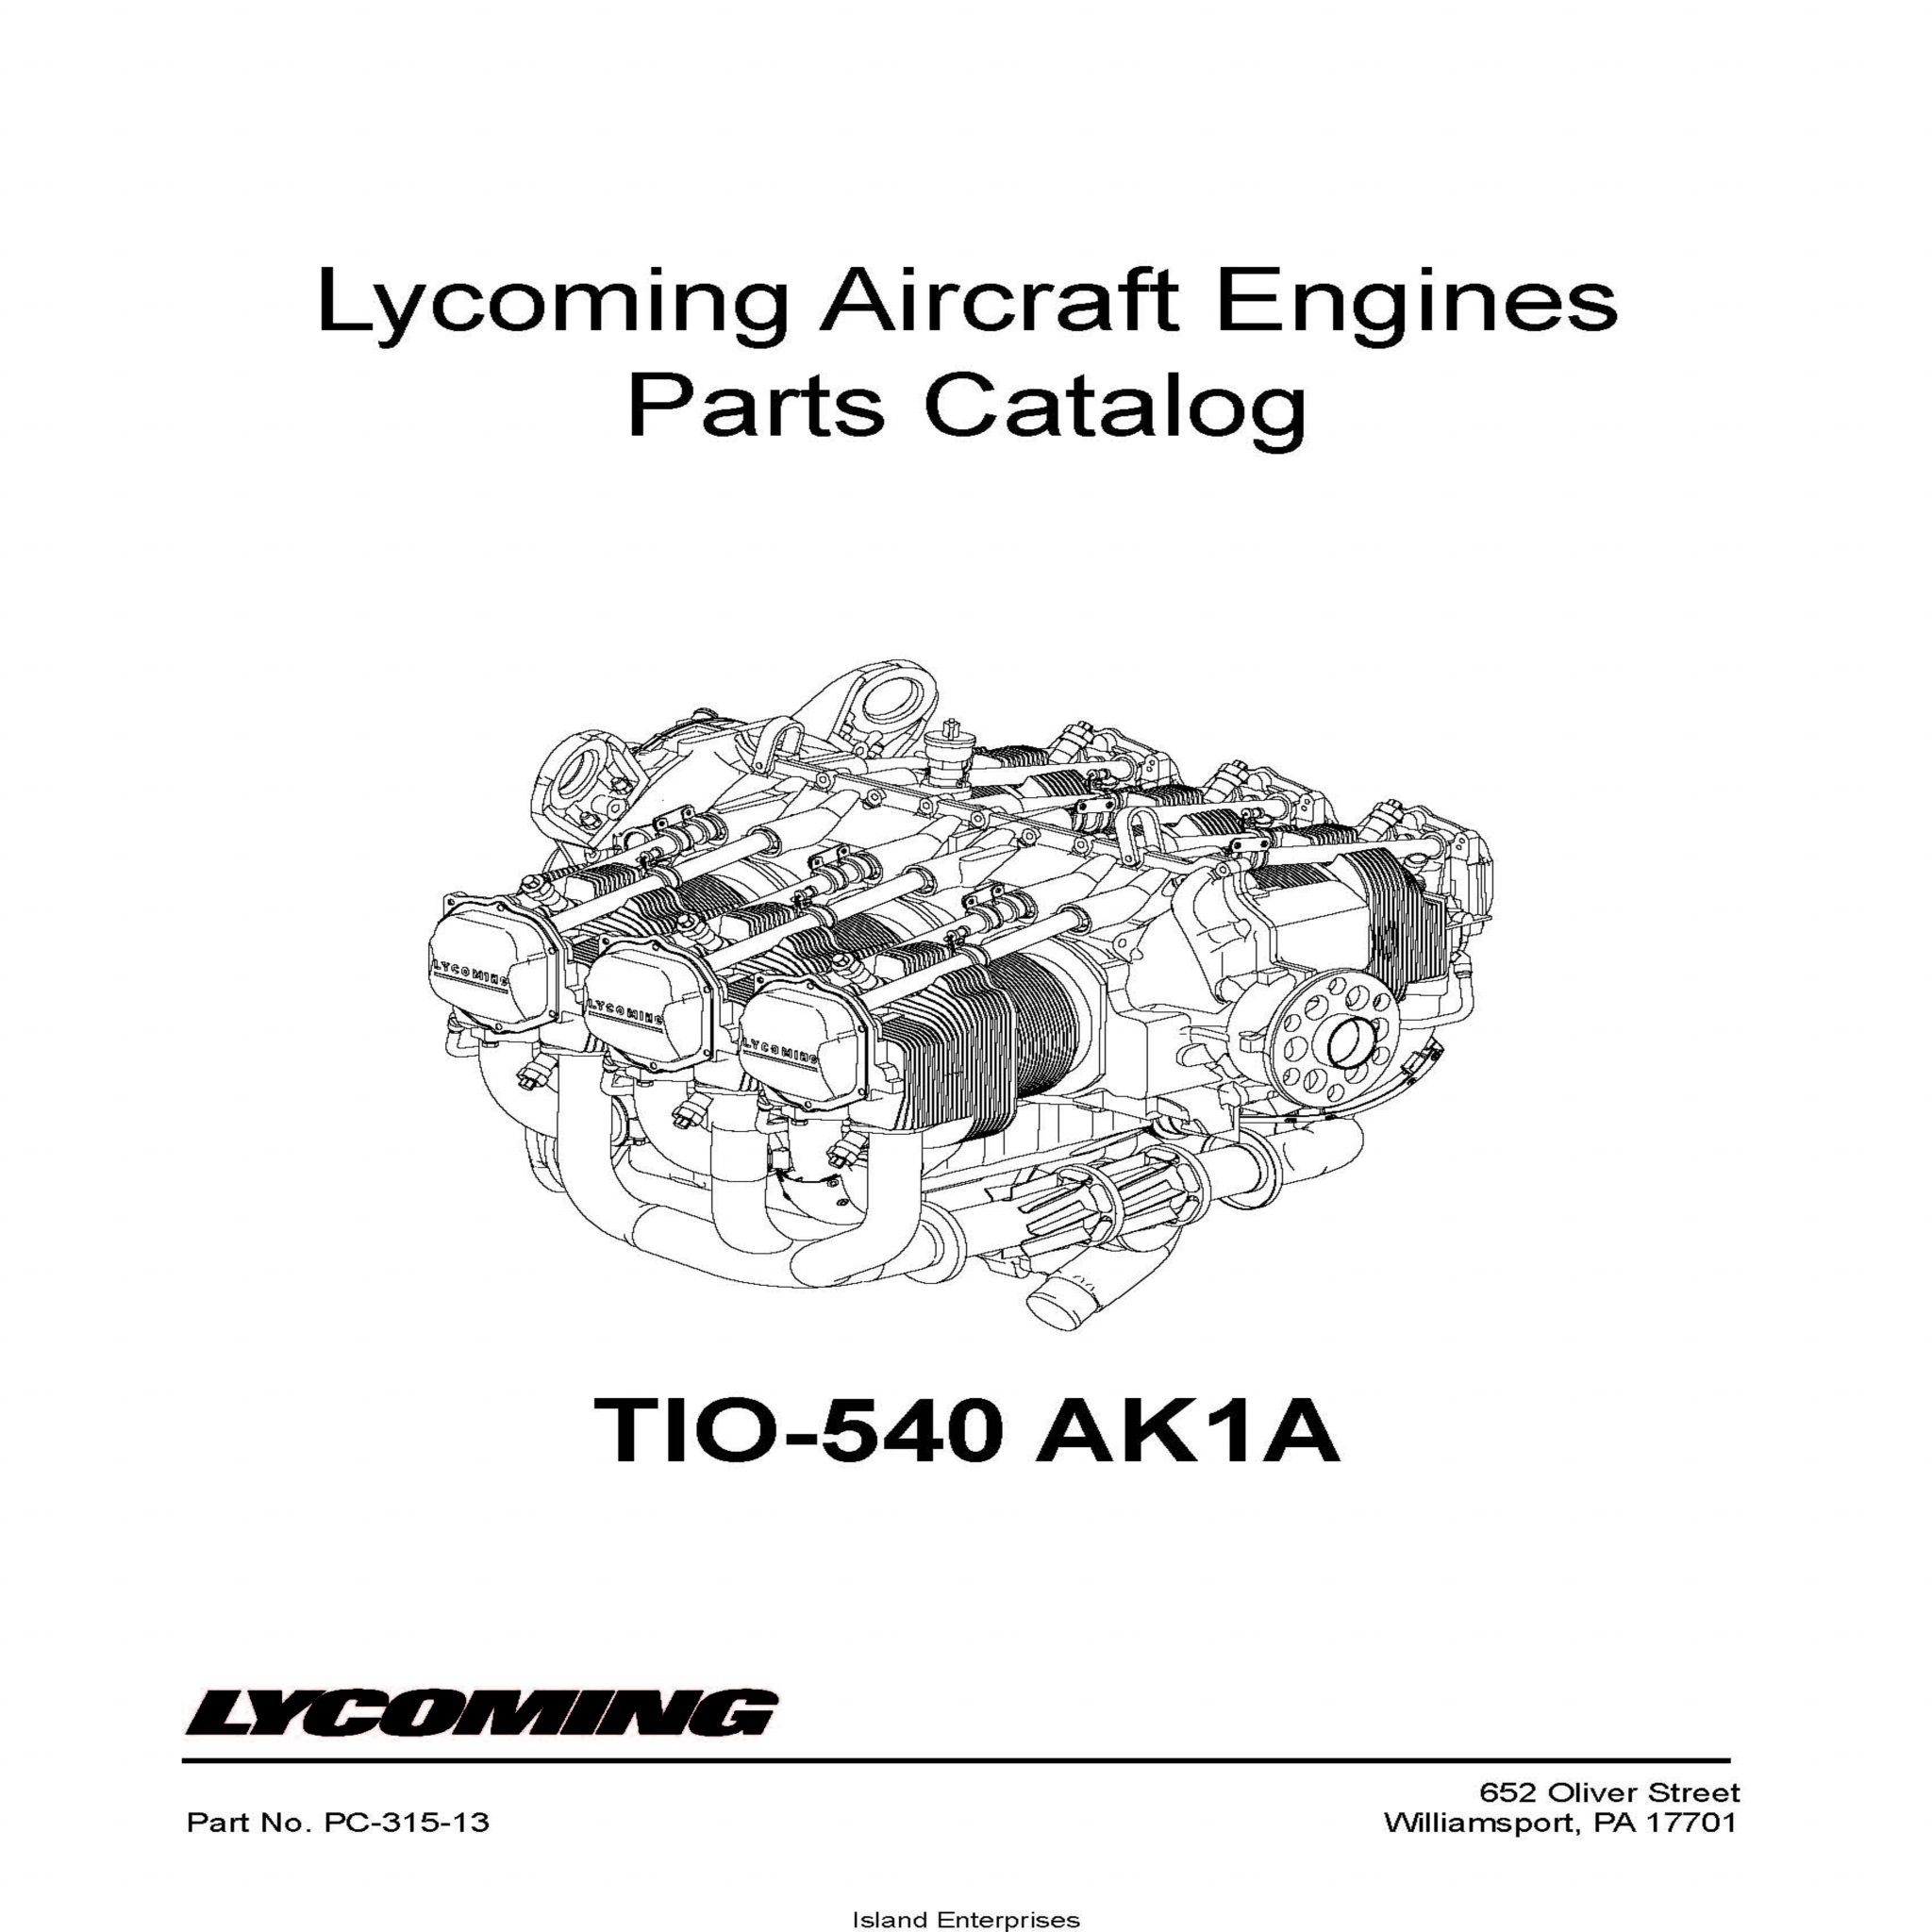 Lycoming Parts Catalog TIO-540 AK1A Part # PC-315-13 v2001